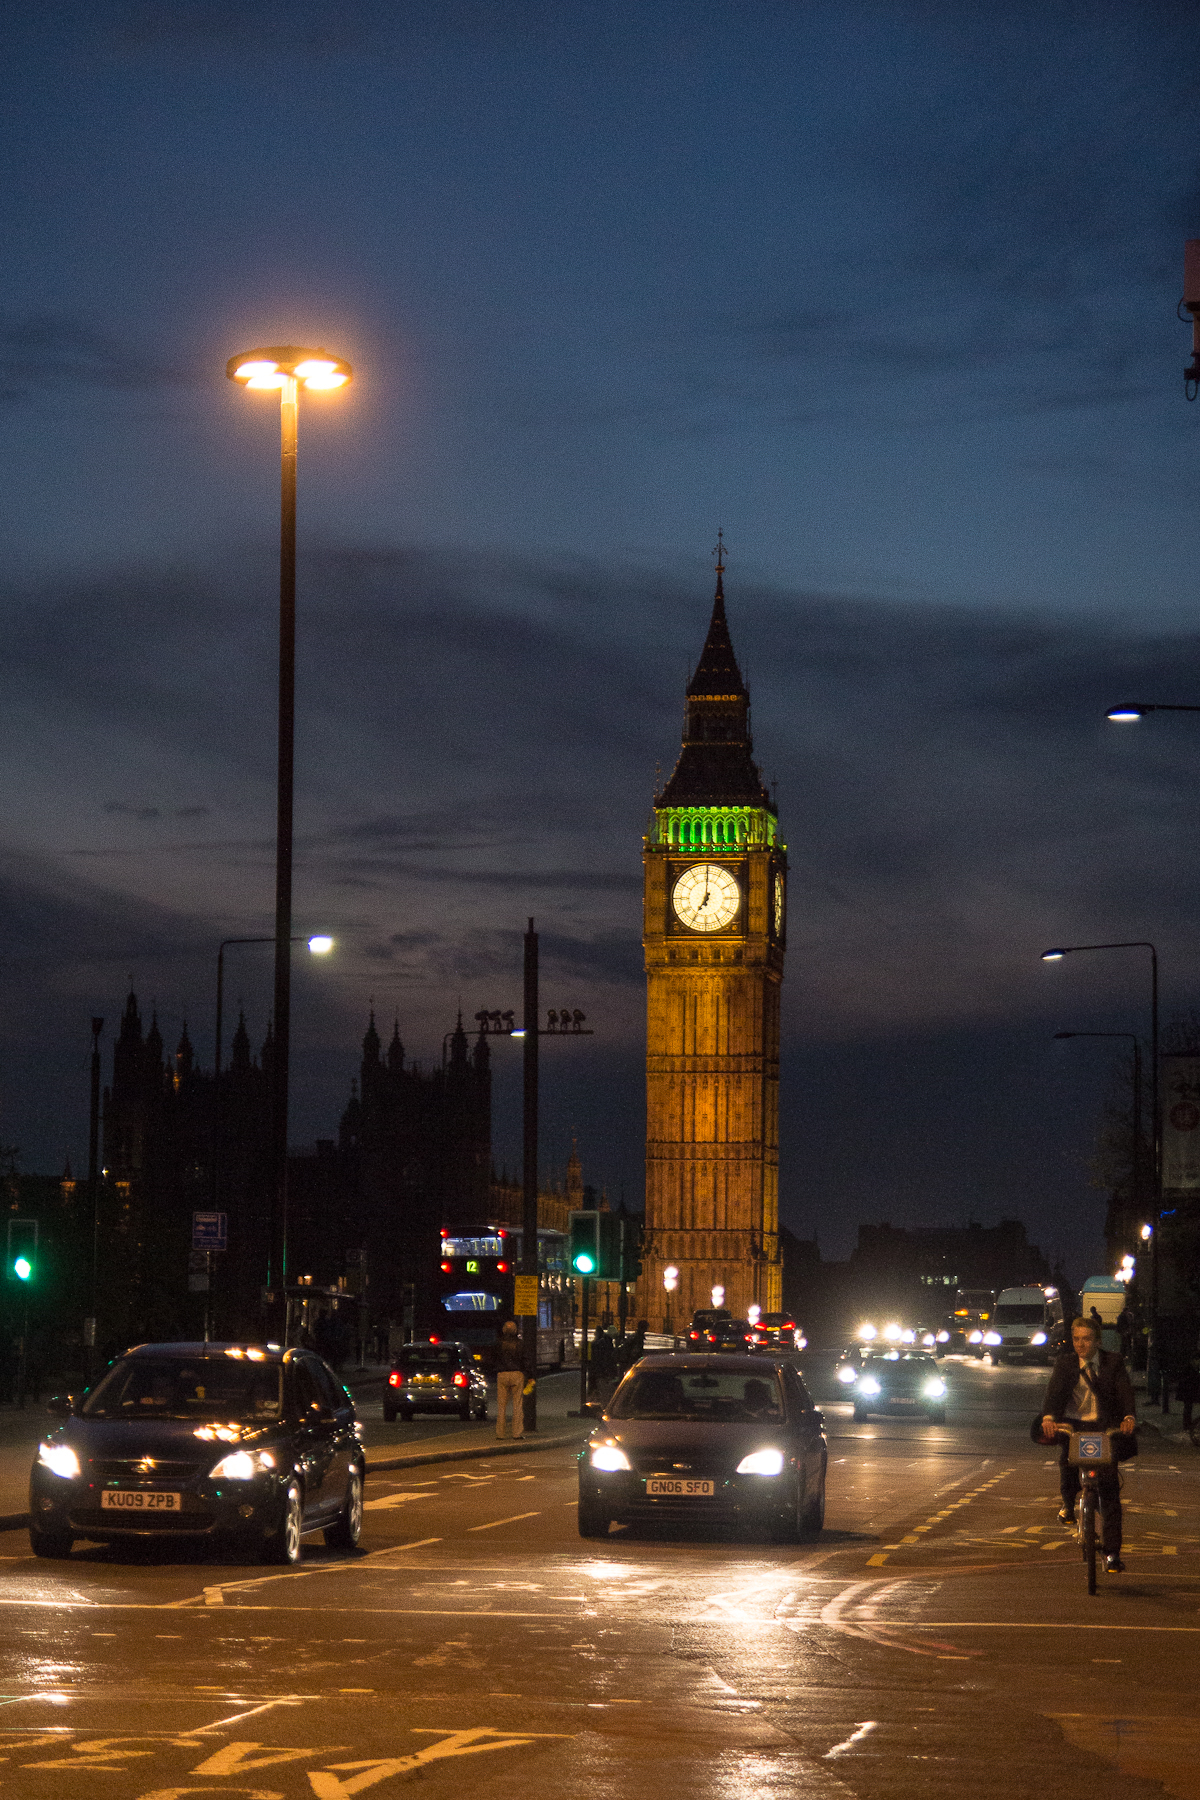 Big Ben At Night Via @Atisgailis